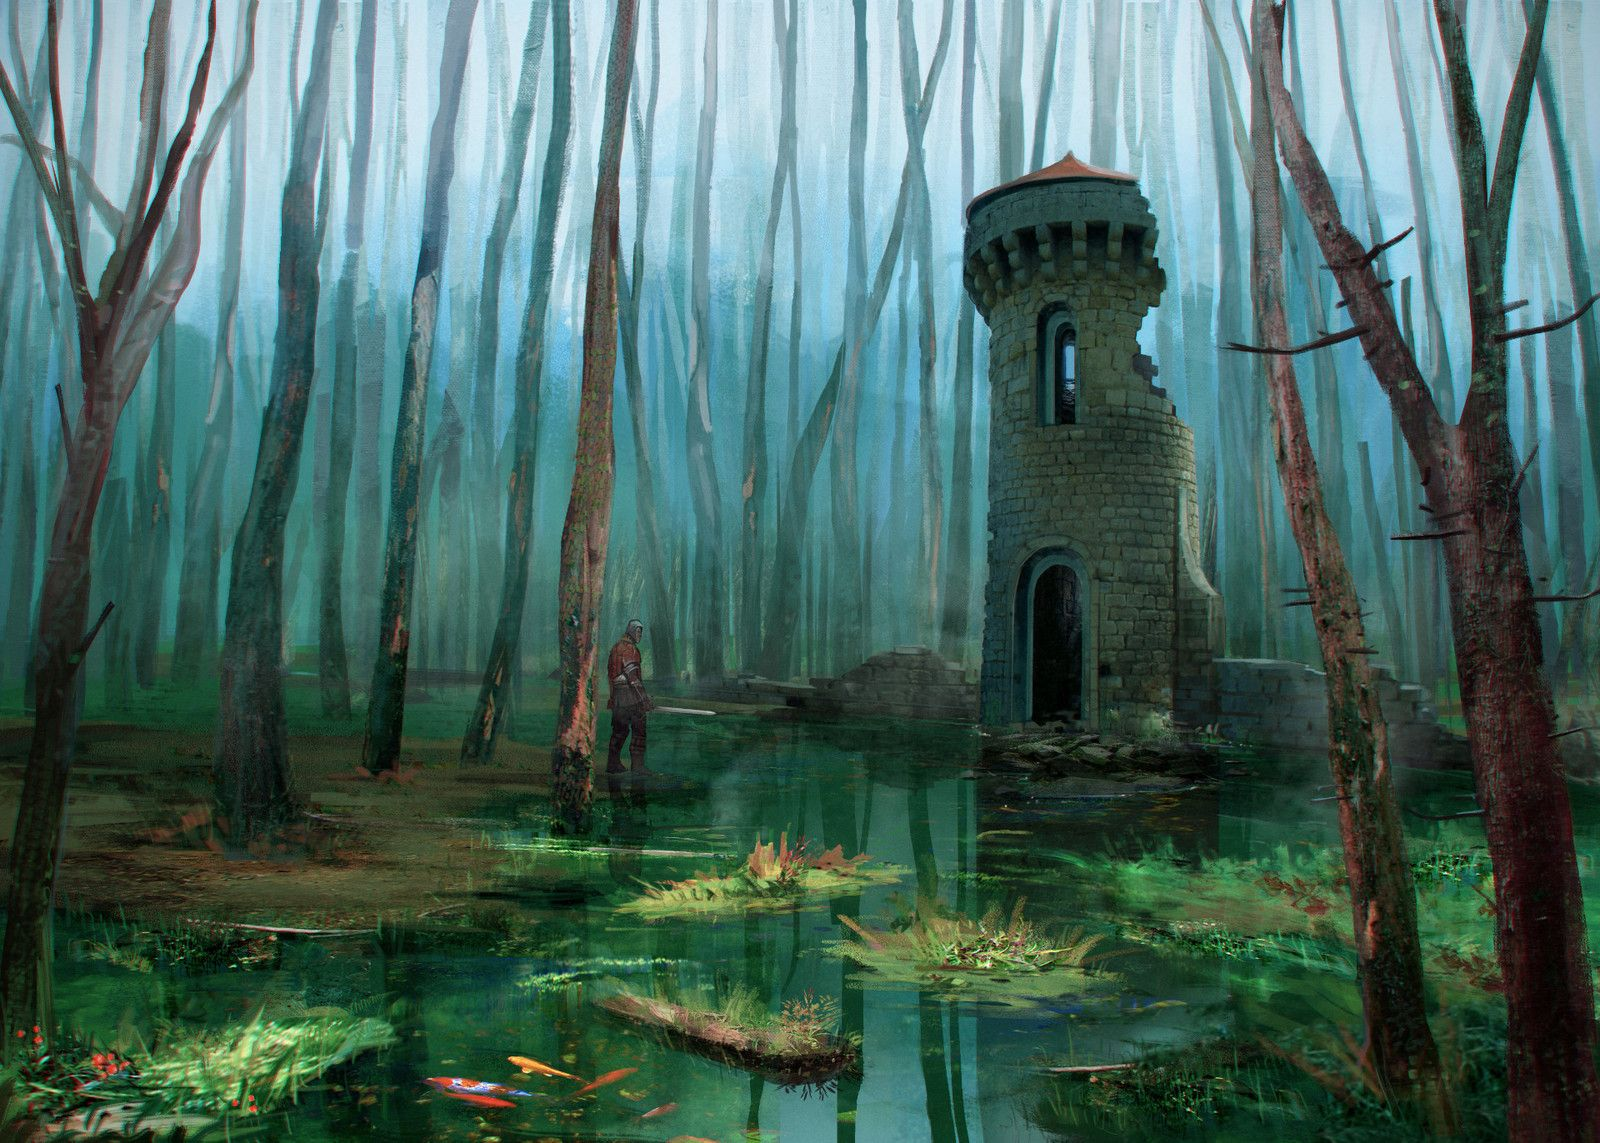 The Tower in the Marsh, Alex Monge on ArtStation at https://www.artstation.com/artwork/1EXlG